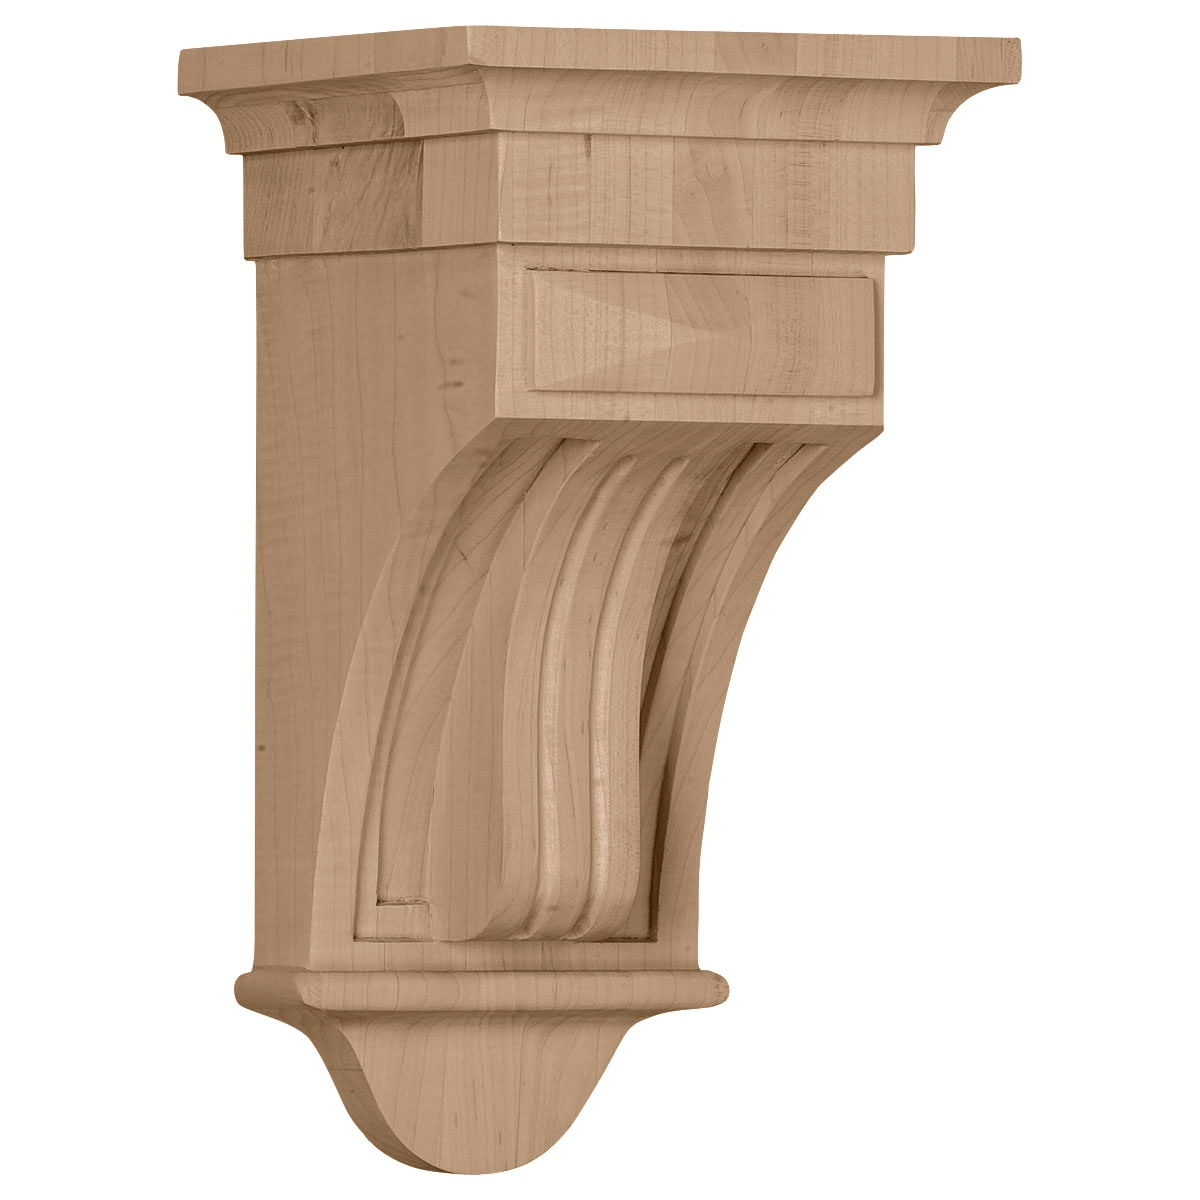 COR05X05X10RA Medium Raised Fluting Corbel